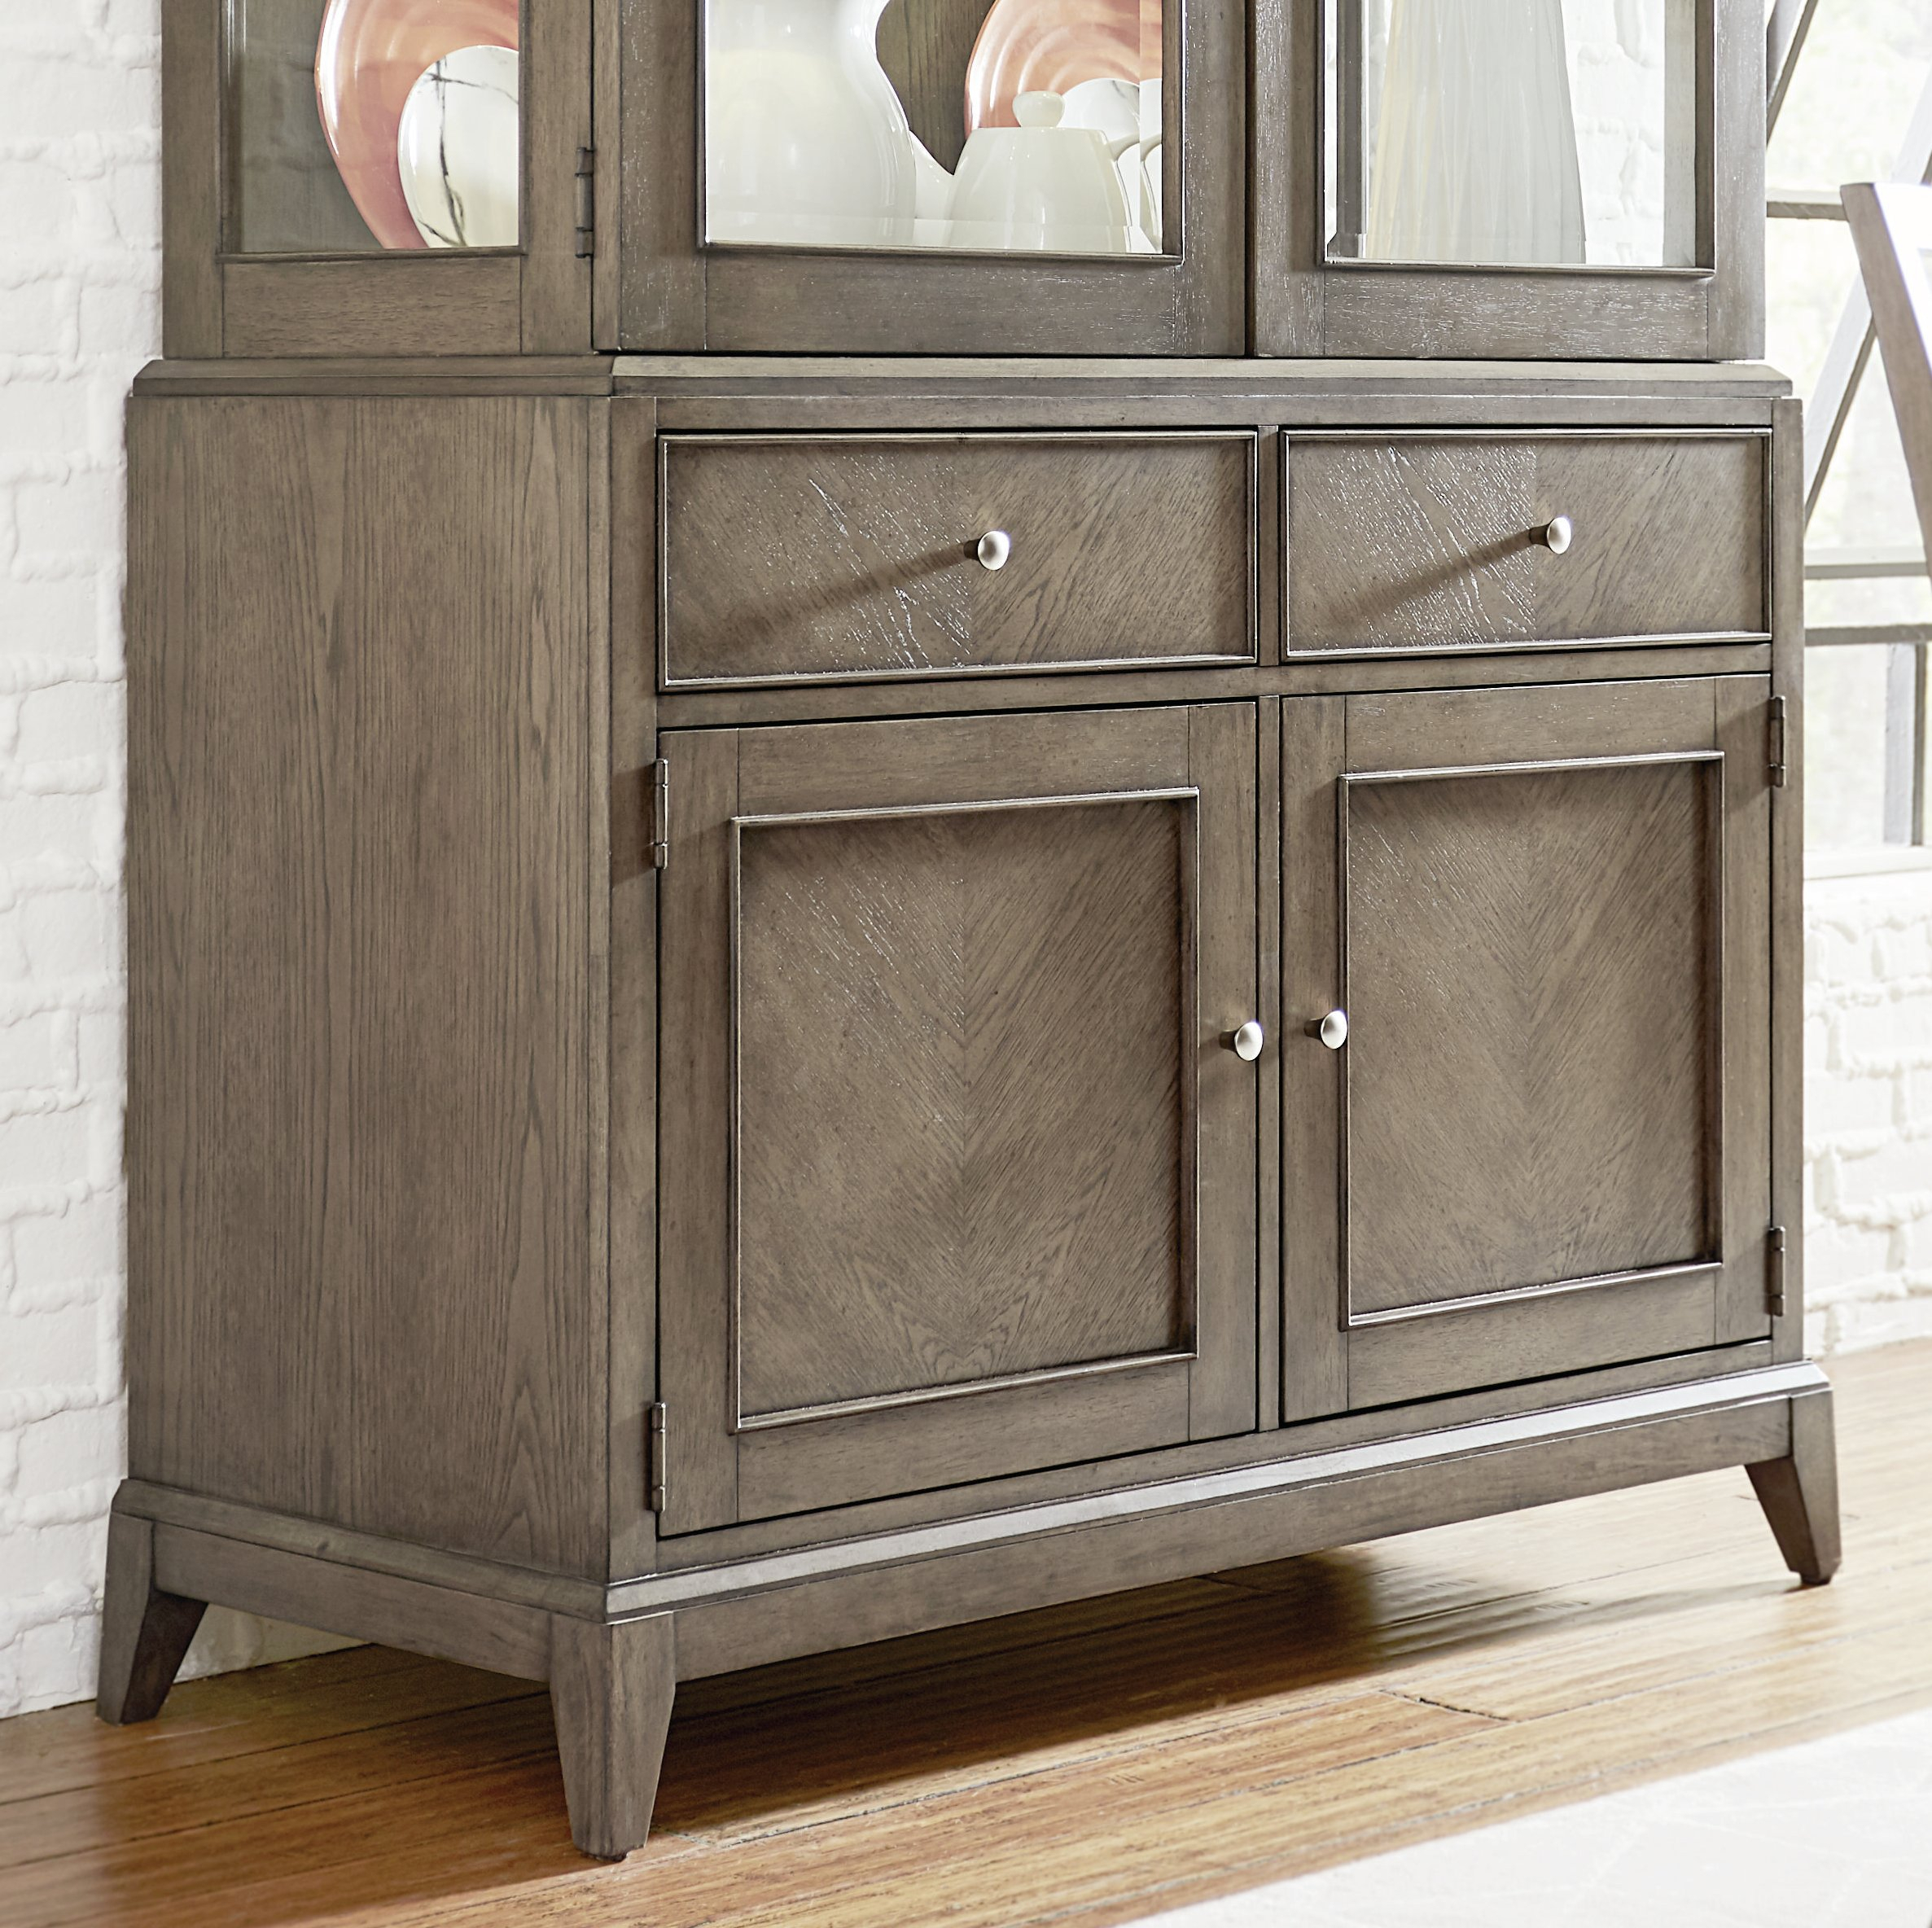 Narrow Dining Room Sideboards | Wayfair Pertaining To Most Popular Pineville Dining Sideboards (View 4 of 20)